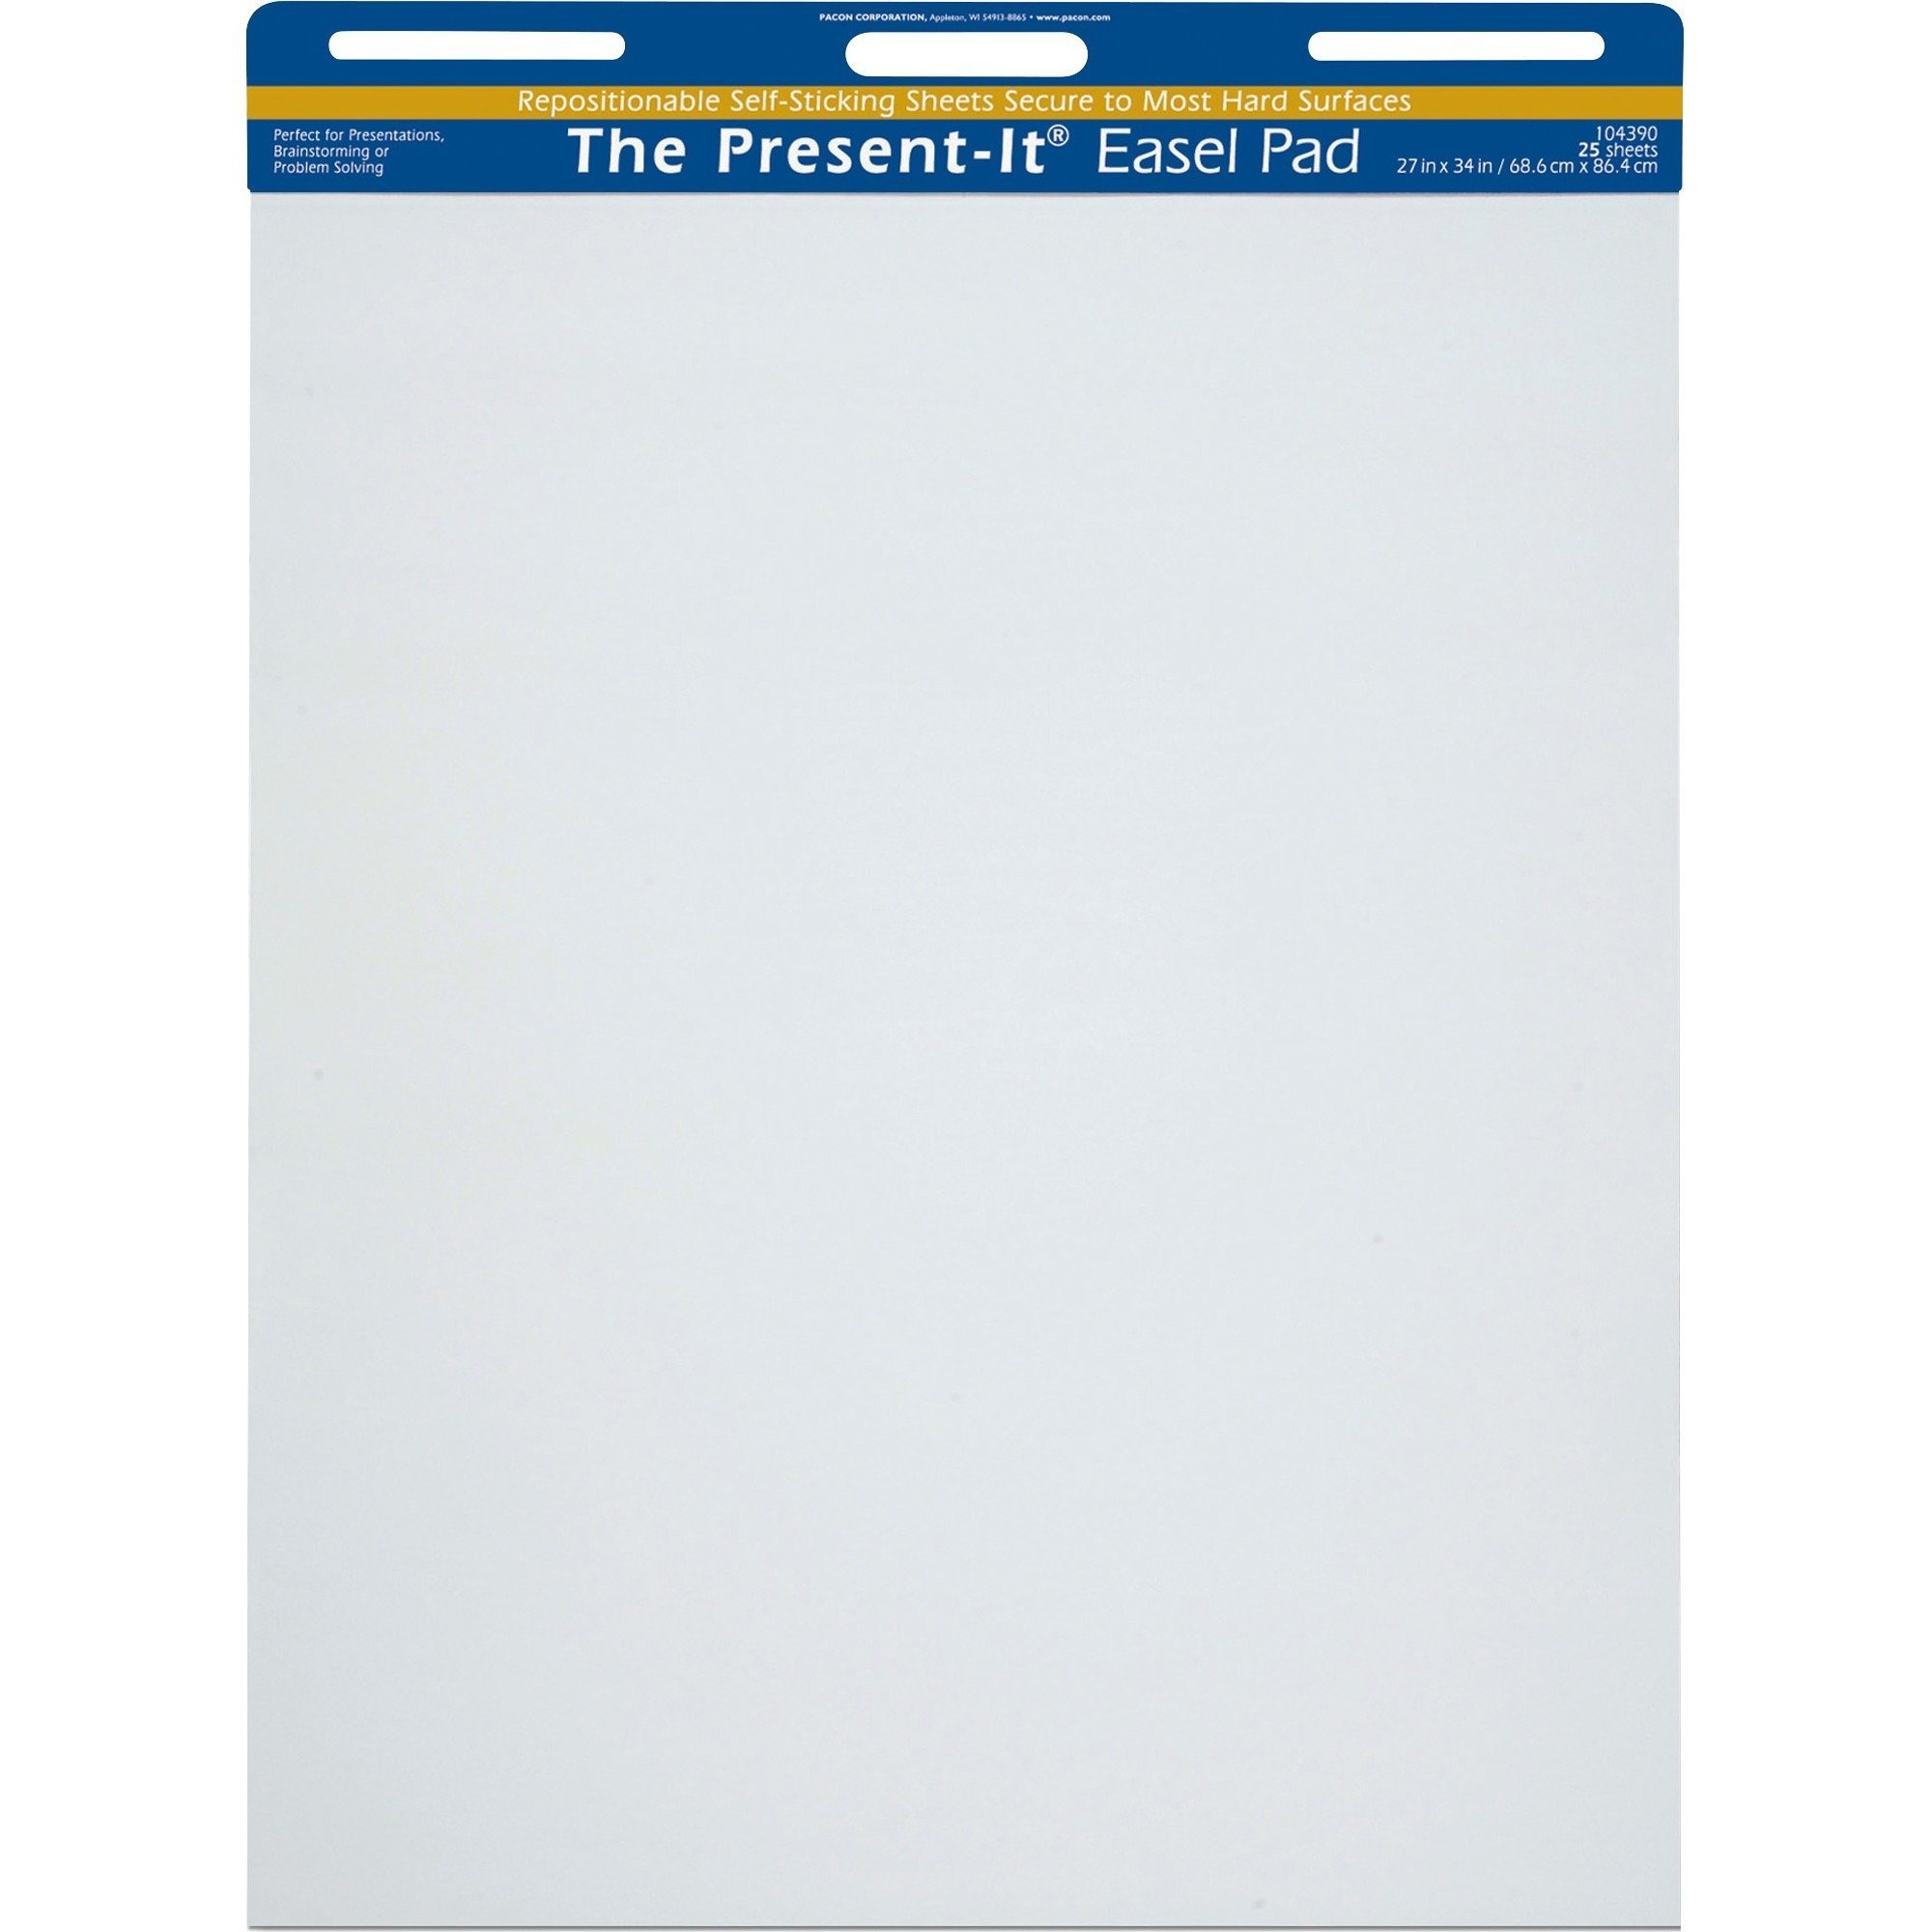 Present-It Easel Pad With Adhesive, 27''X34'', Unruled, 25 Sheets by Present It